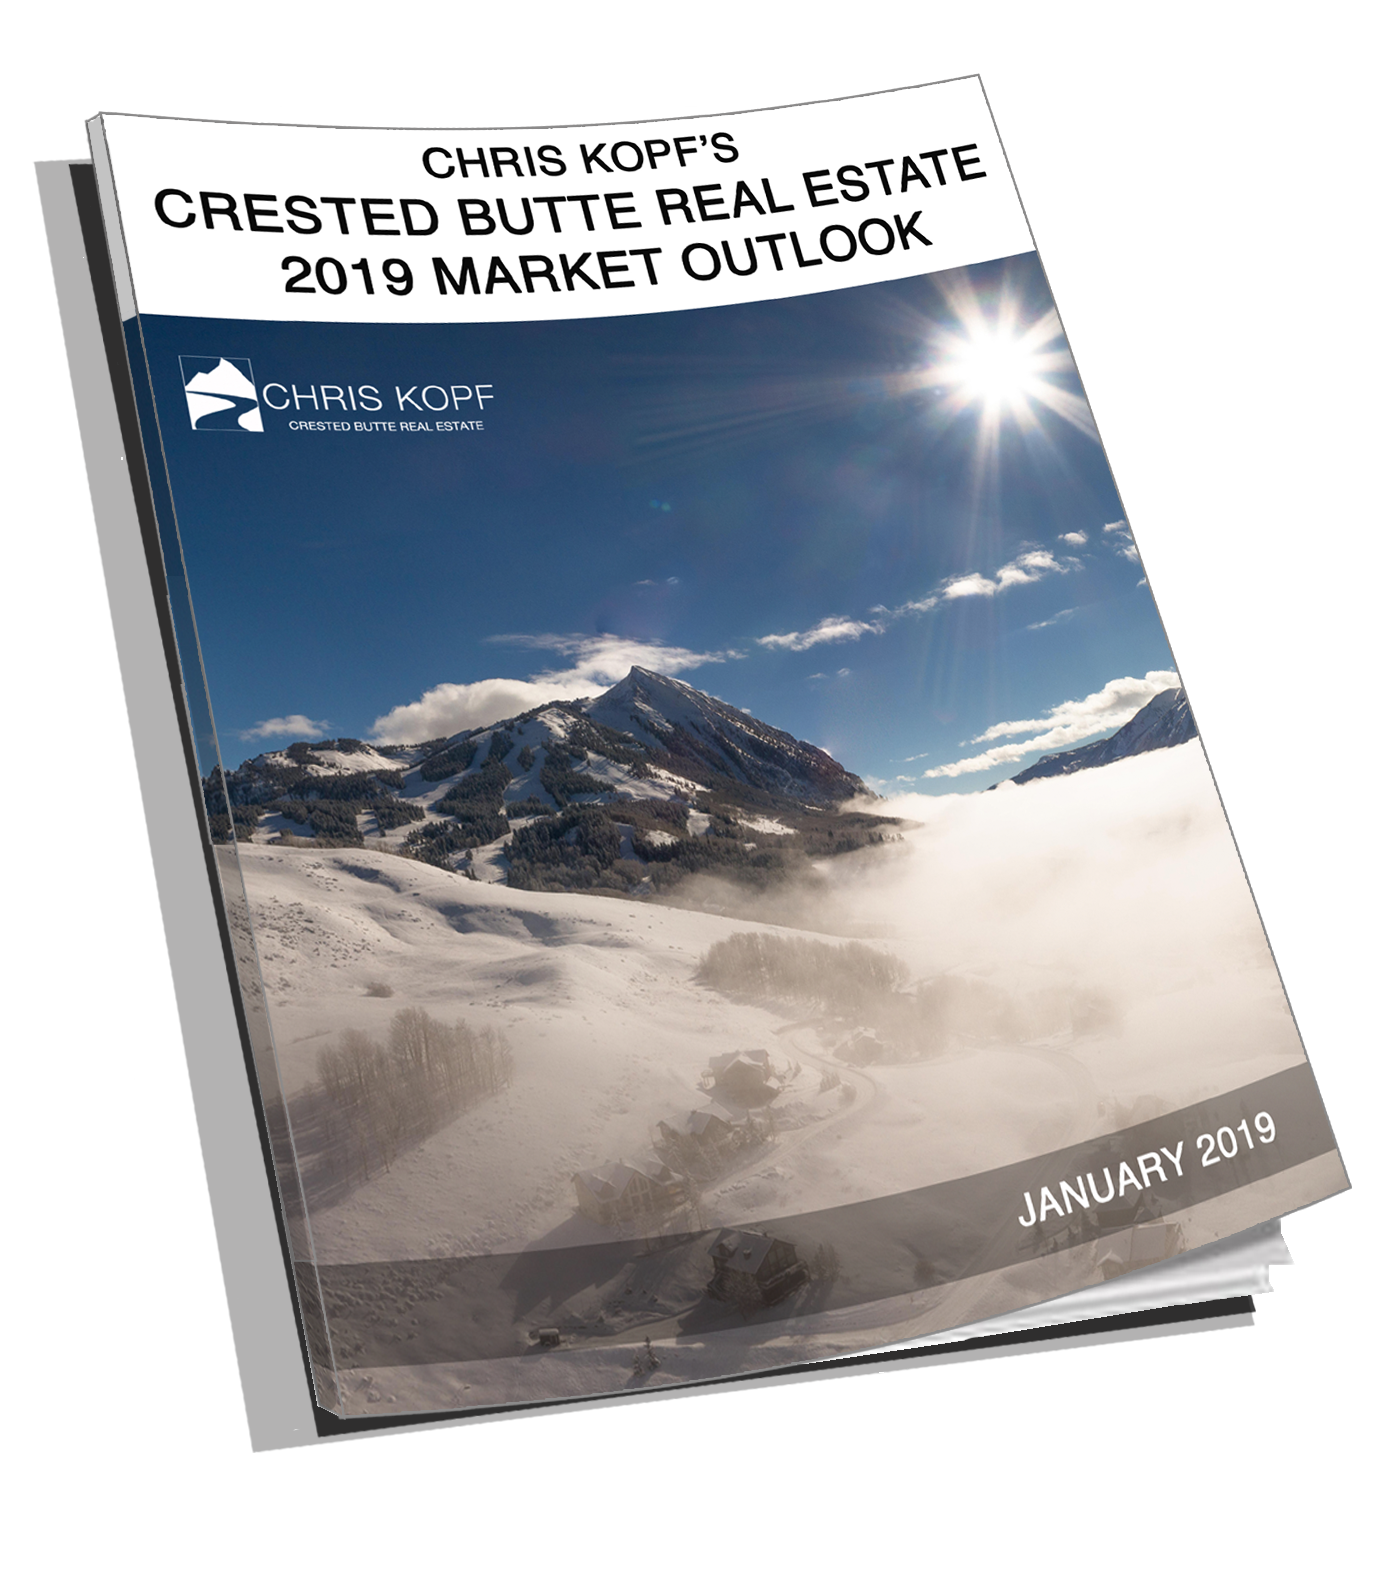 2019 Crested Butte Real Estate Market Outlook